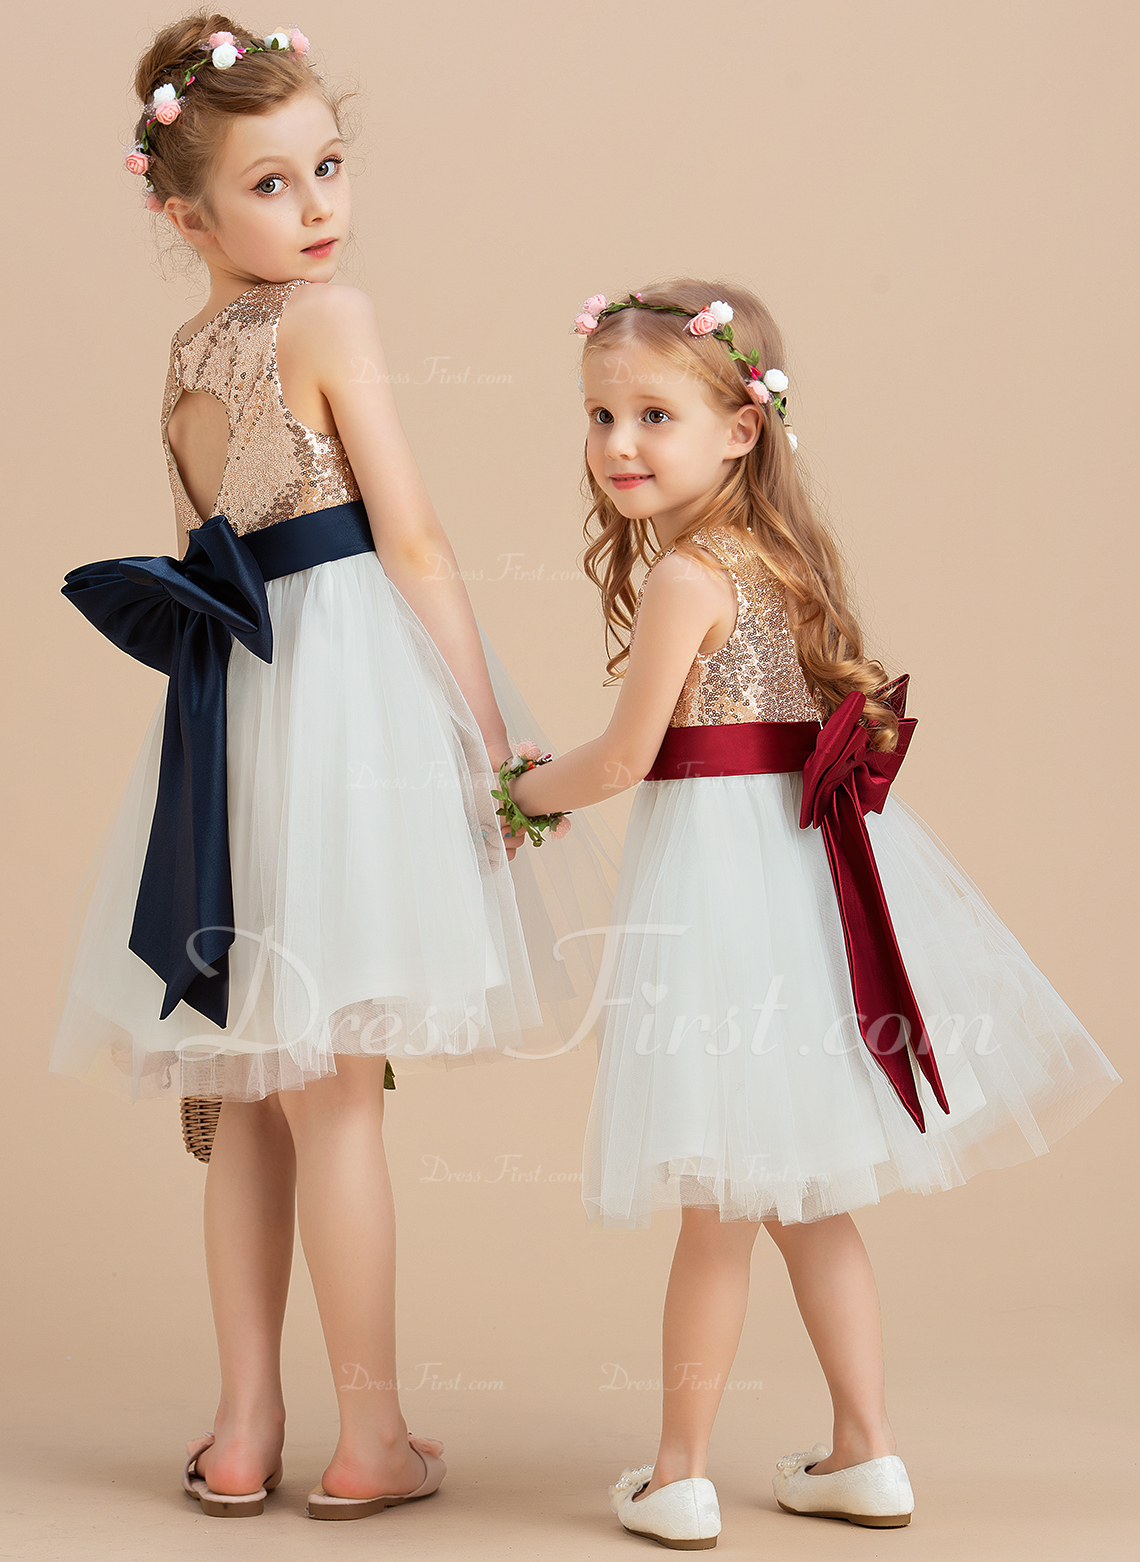 A-Line/Princess Knee-length Flower Girl Dress - Satin/Tulle/Sequined Sleeveless Scoop Neck With Sequins/Bow(s) (Undetachable sash)